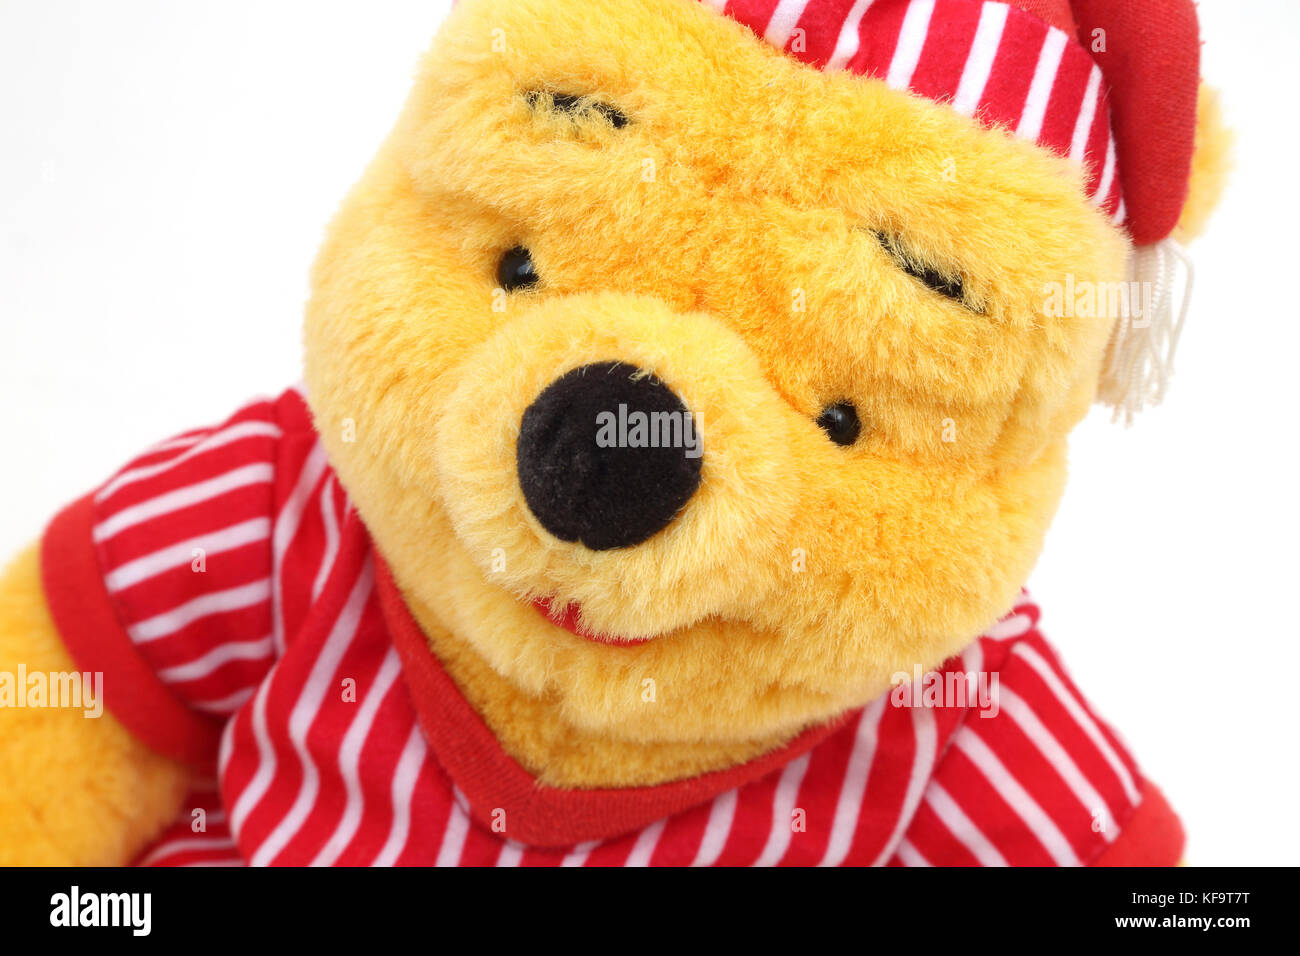 Disney's Winnie The Pooh In Night Clothes Soft Toy - Stock Image